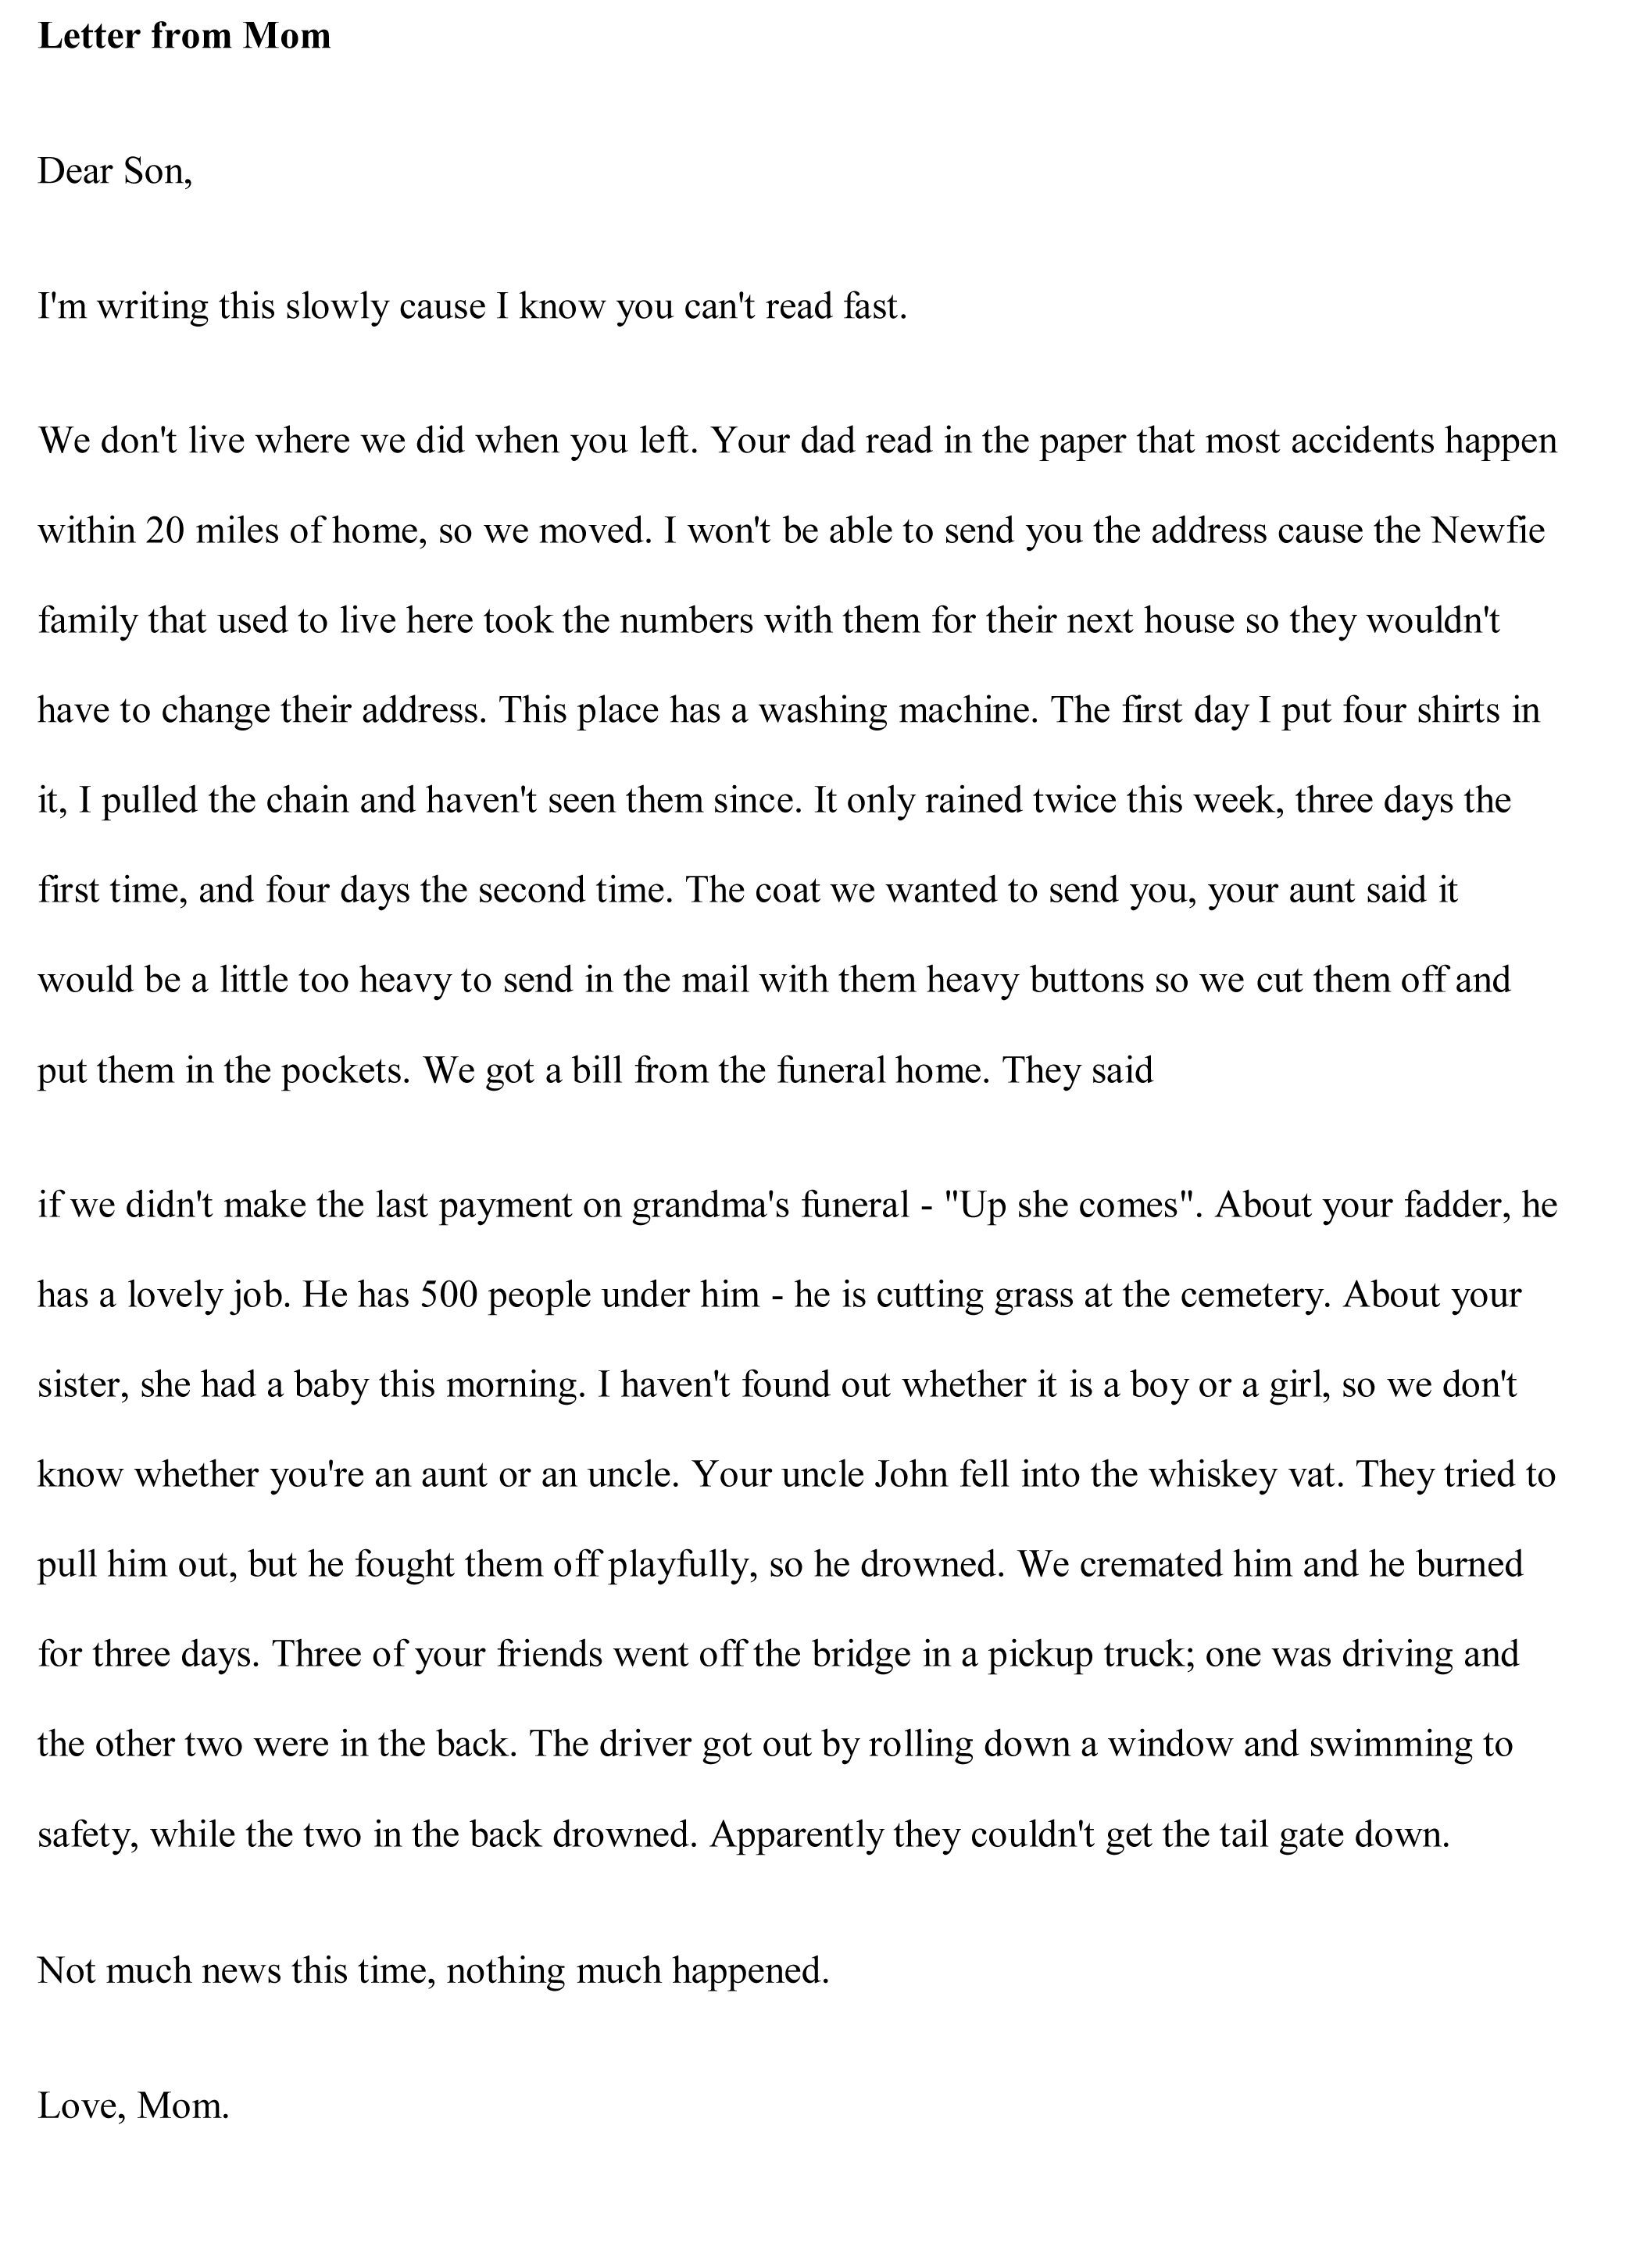 003 Essay Example Funny Essays Free Stupendous Examples Composition Topics On School Life Full